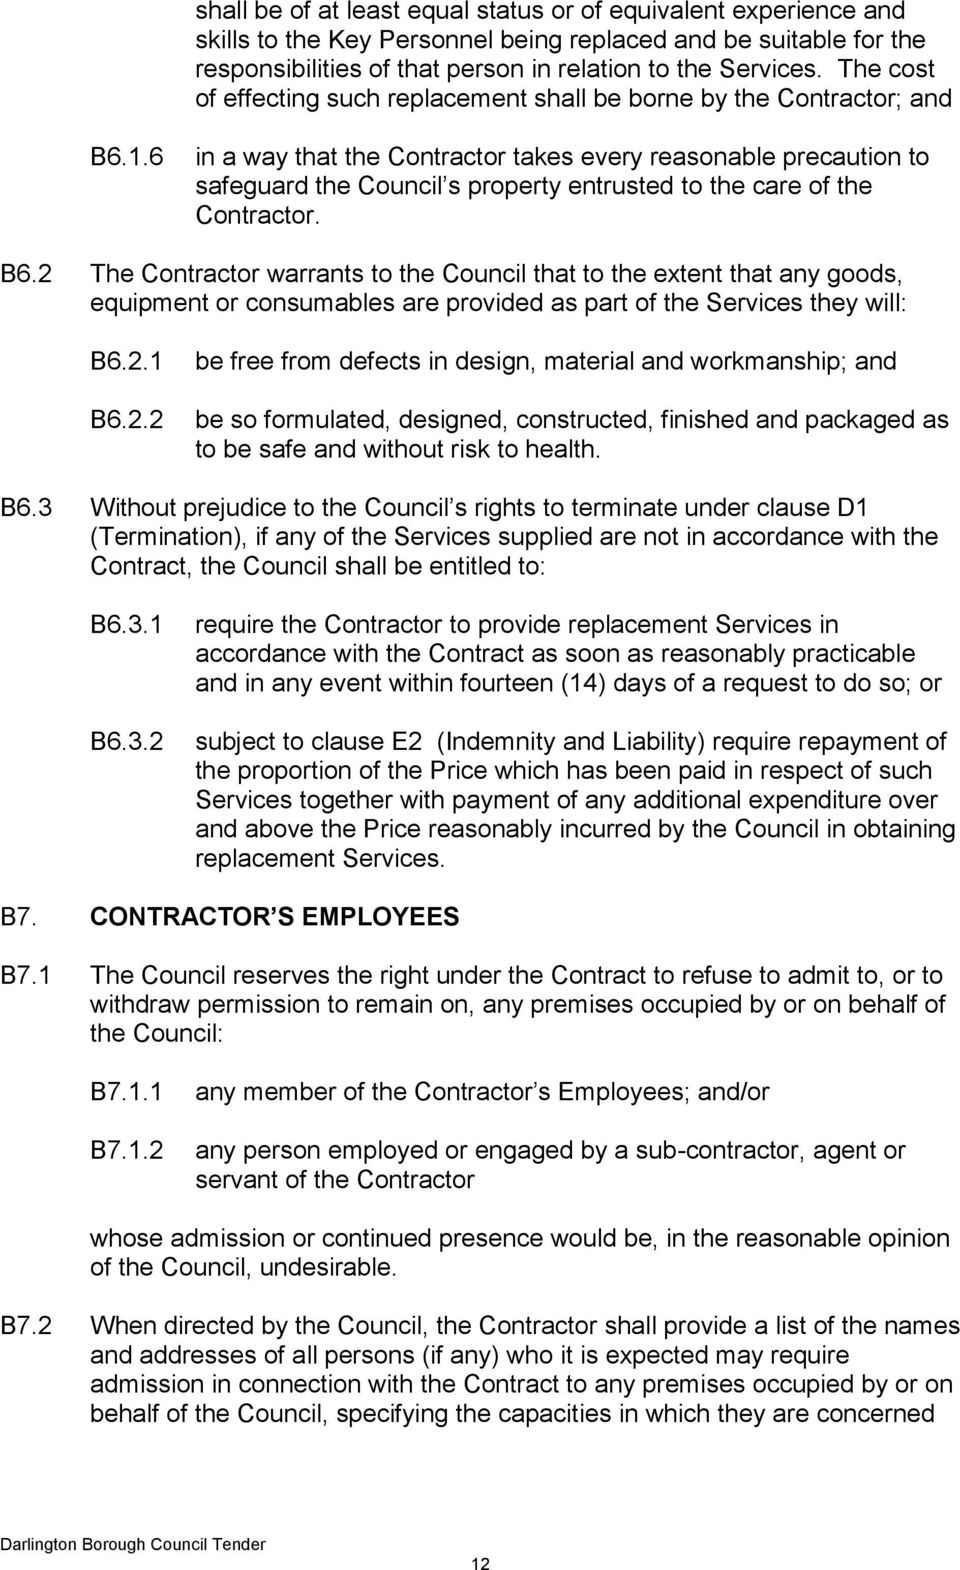 6 in a way that the Contractor takes every reasonable precaution to safeguard the Council s property entrusted to the care of the Contractor. B6.